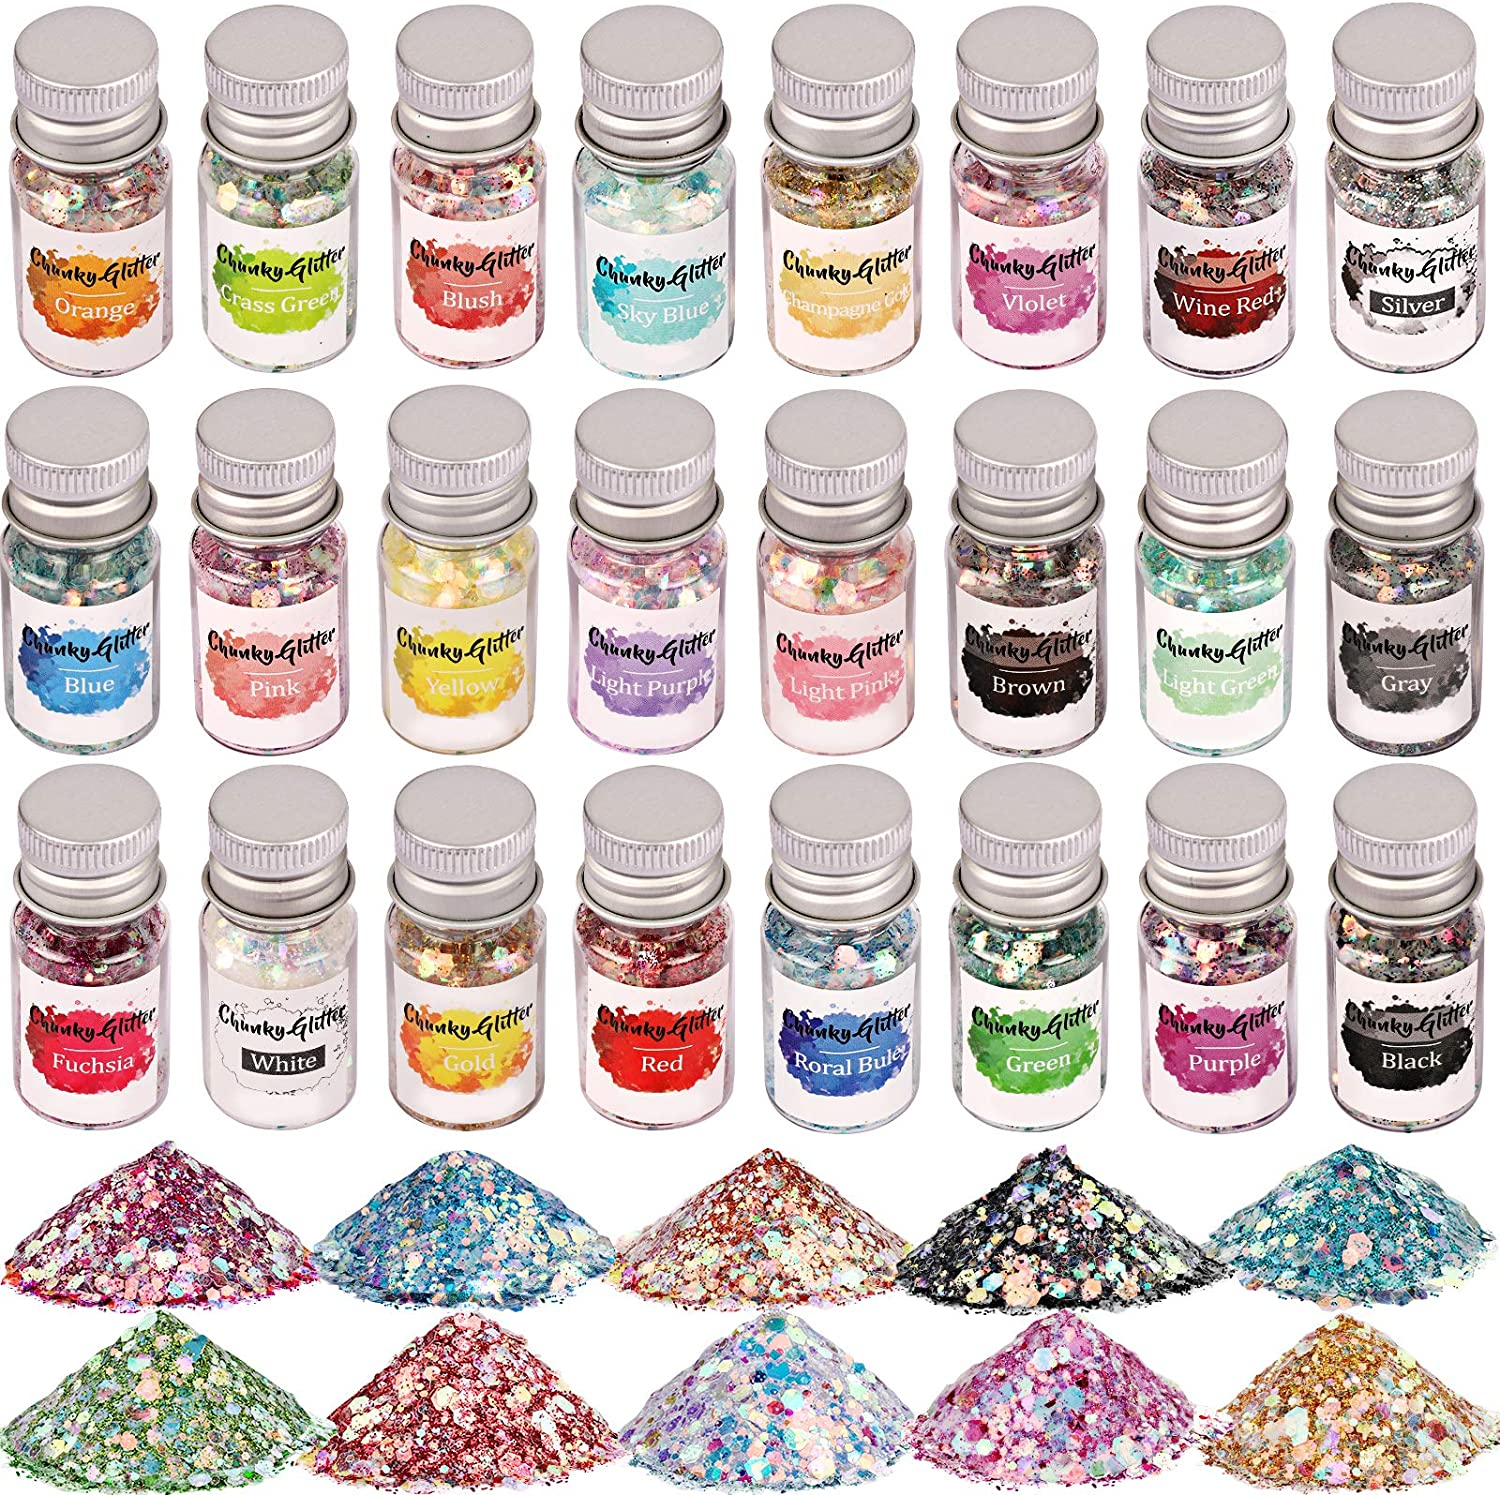 Opal Chunky Glitter, Set of 24, LEOBRO Holographic Craft Glitter for Resin Art Crafts, Cosmetic Glitter for Nail Body Face Eye, Iridescent Sparkle Sequin Flake Glitter for Slime Jewelry Making